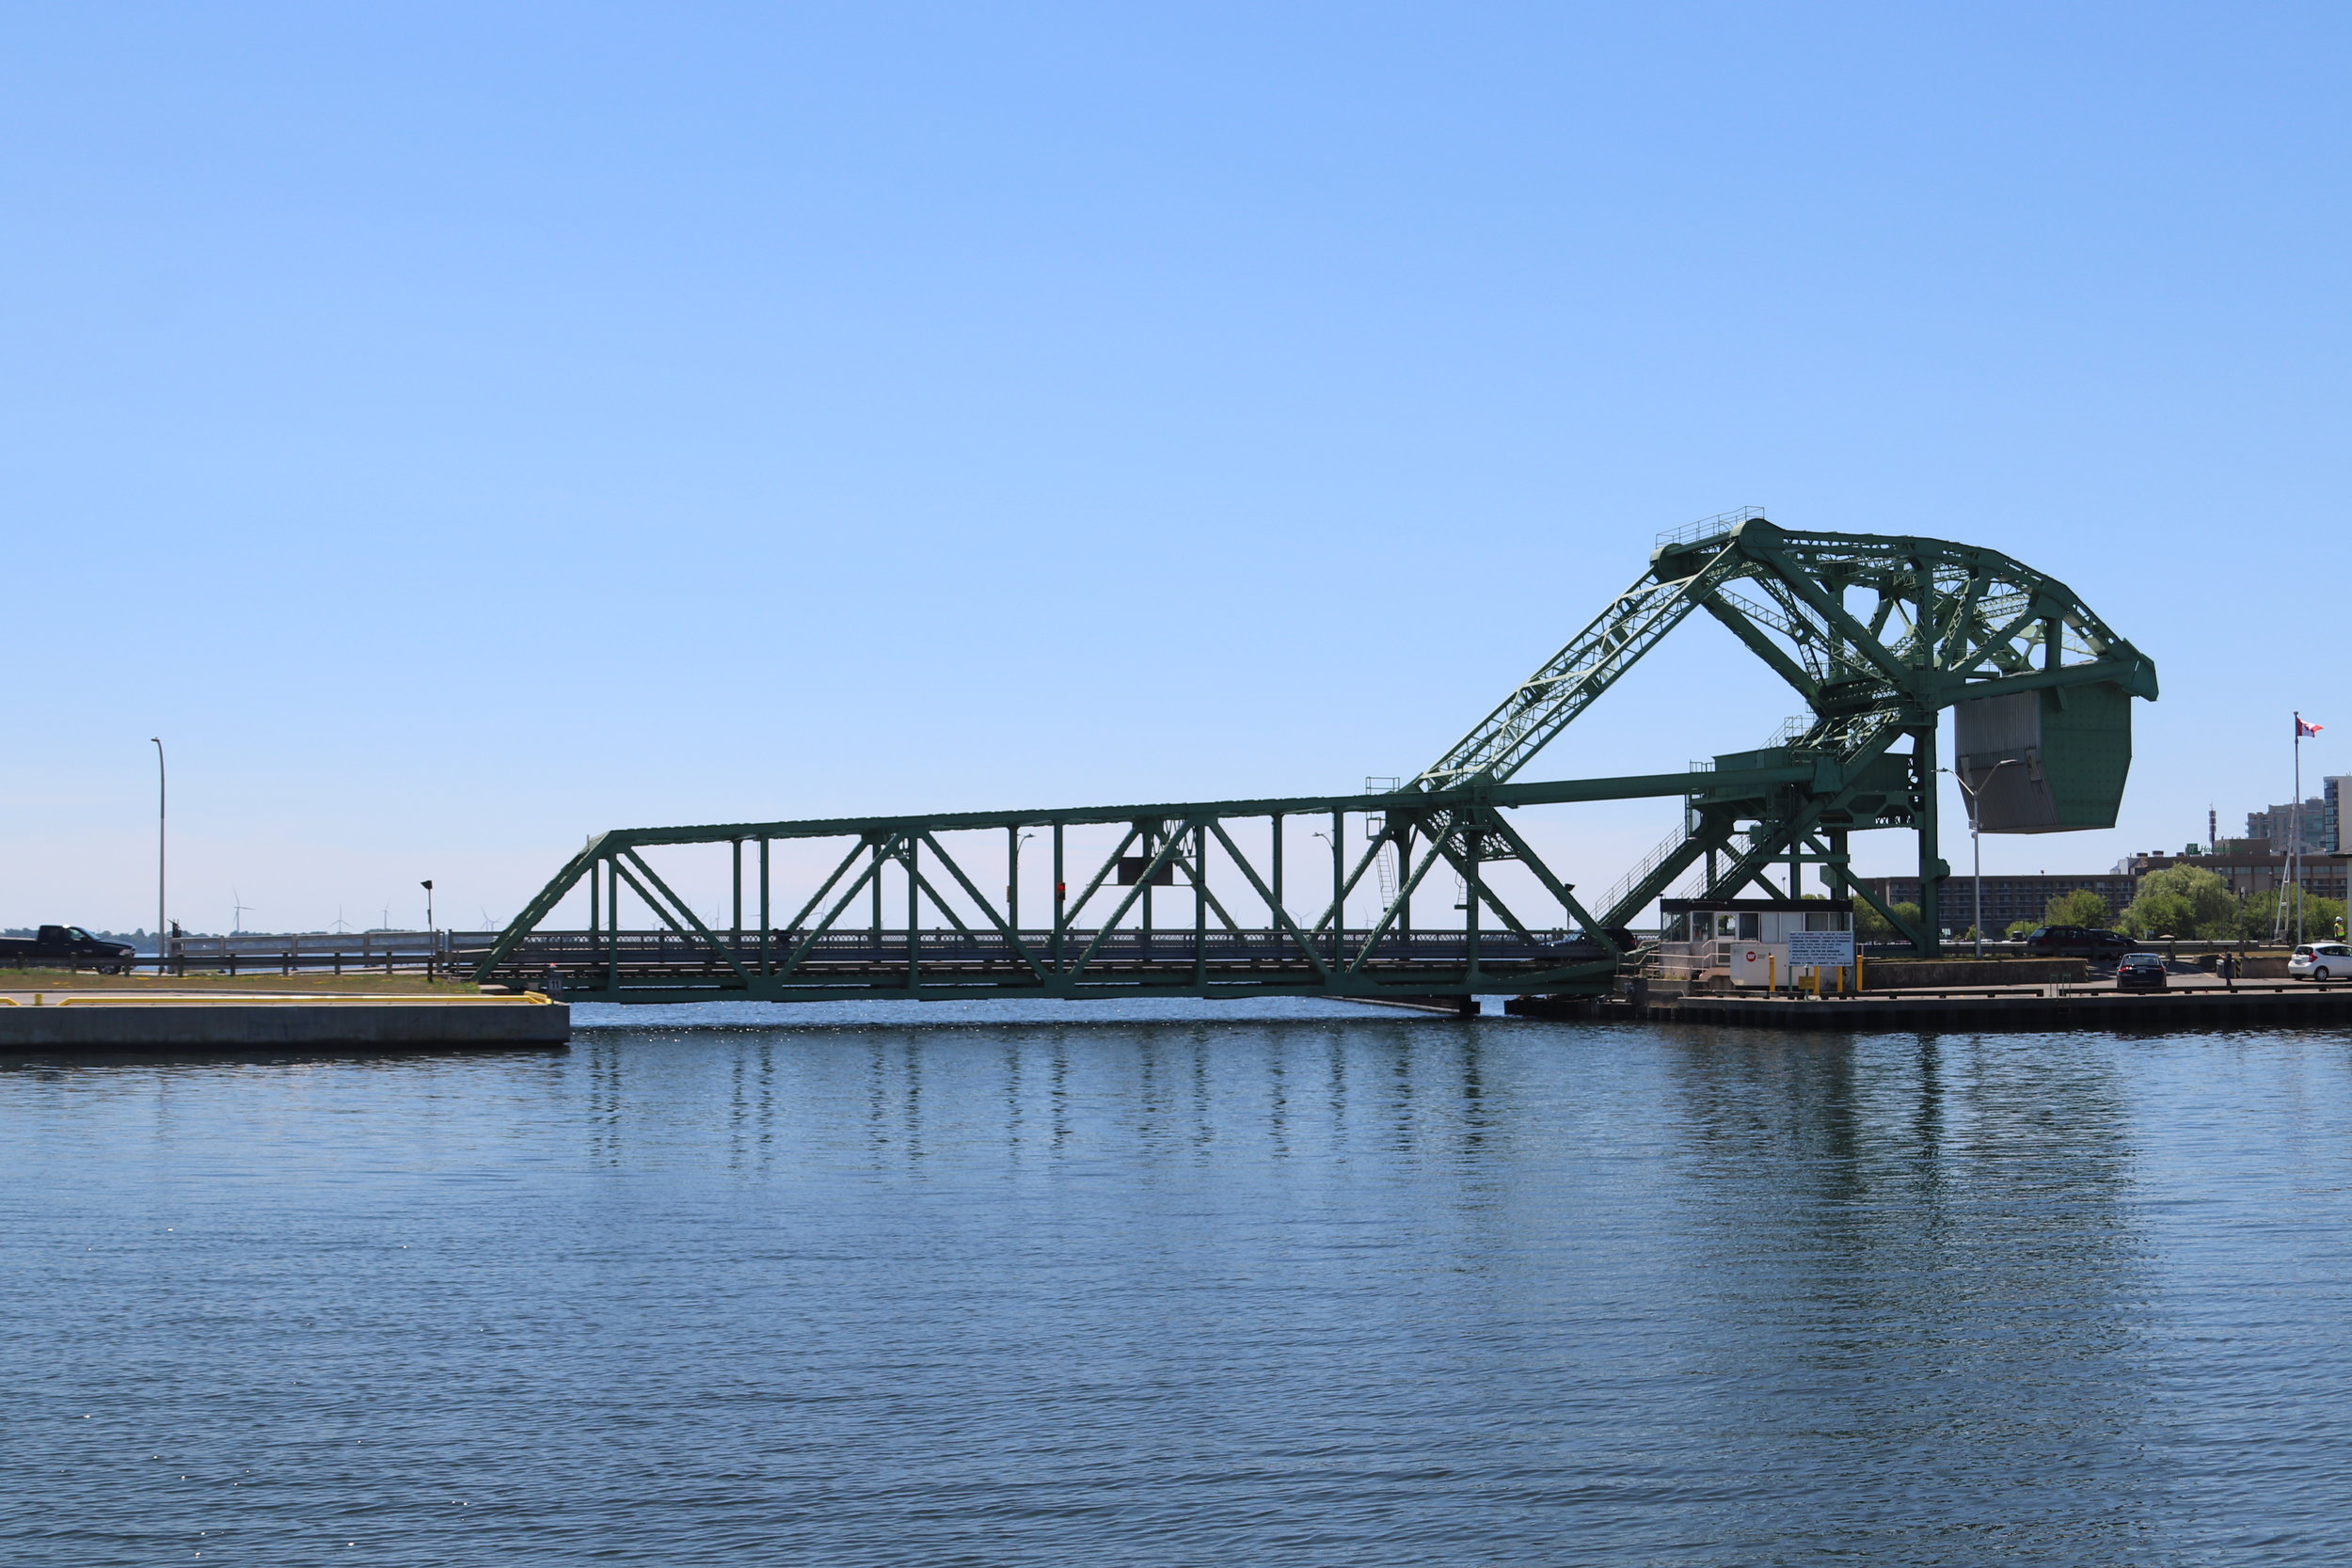 Lift bridge at Kingston - opens on the hour